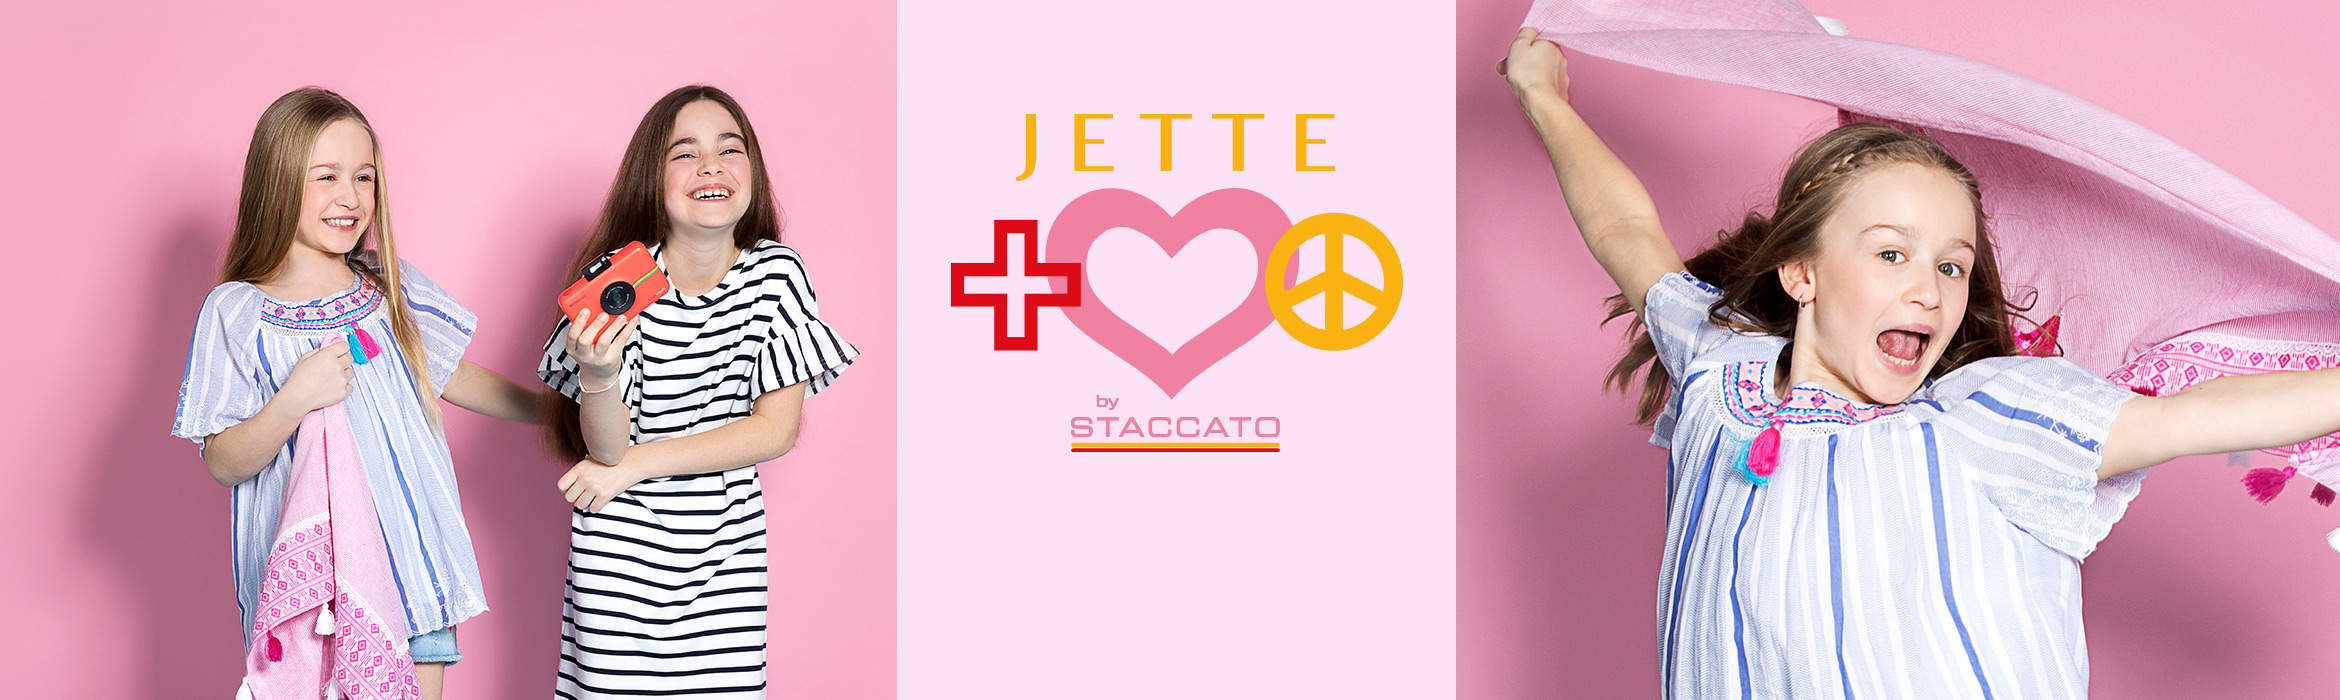 JETTE by Staccato Kindermode